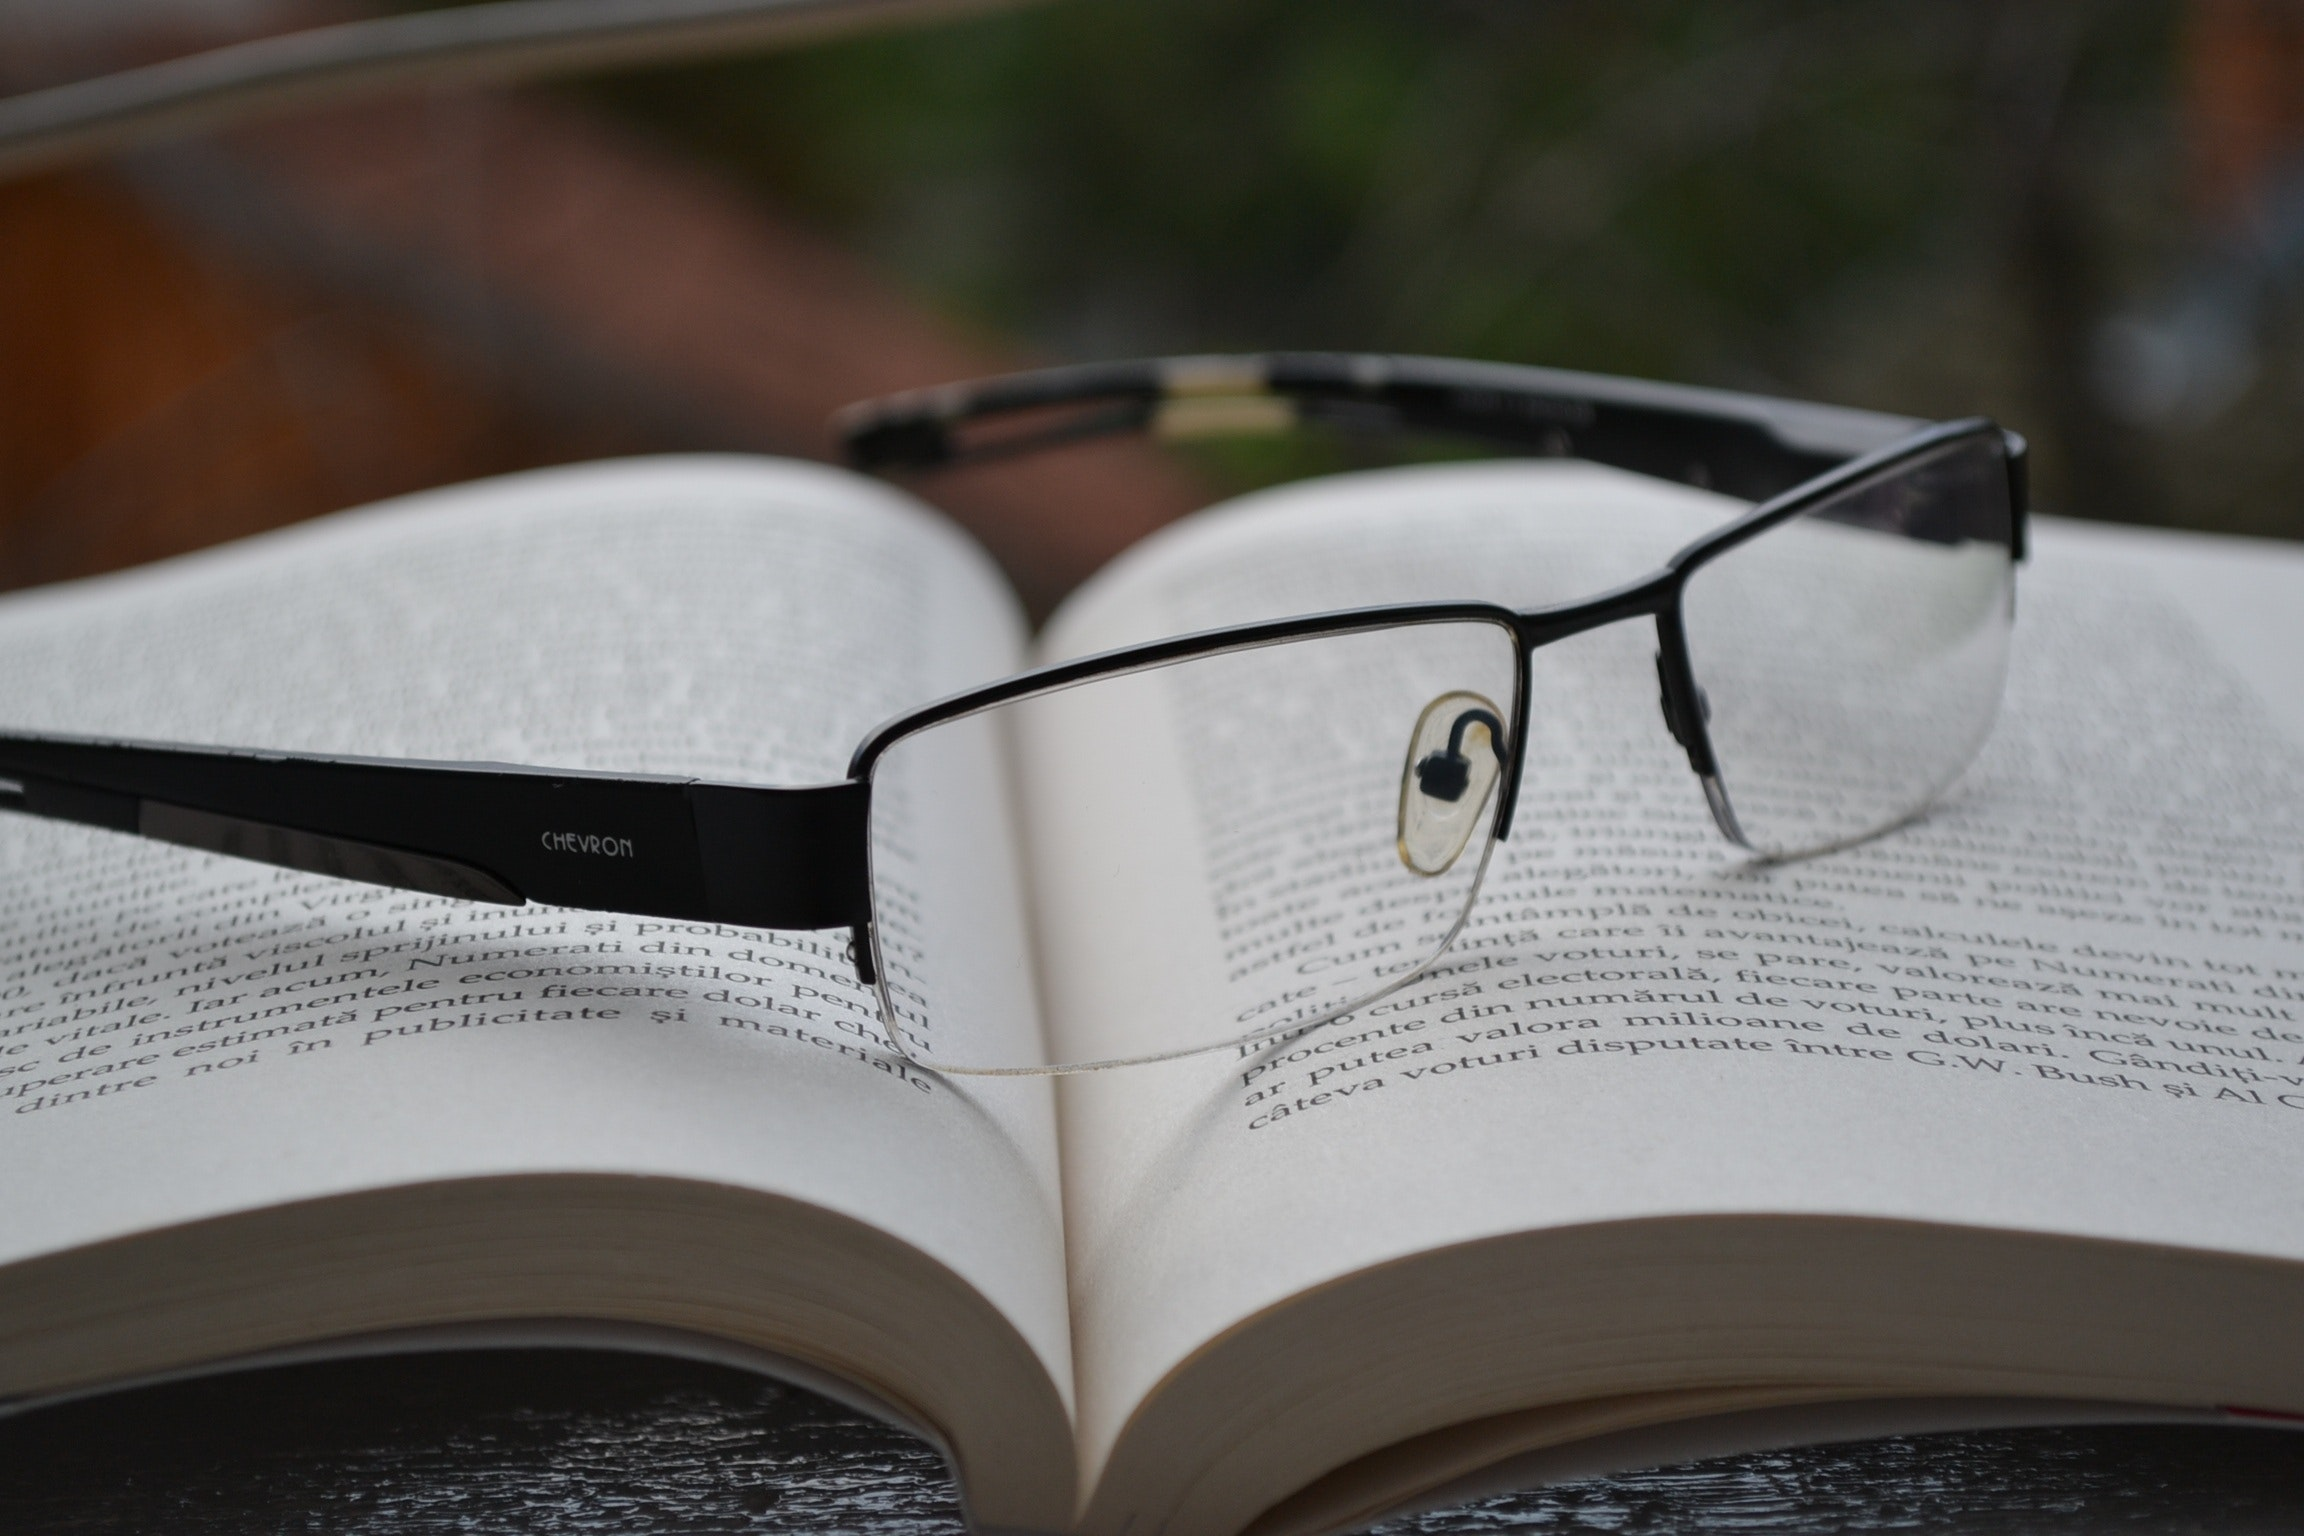 A pair of reading glasses is laid upon an open book.